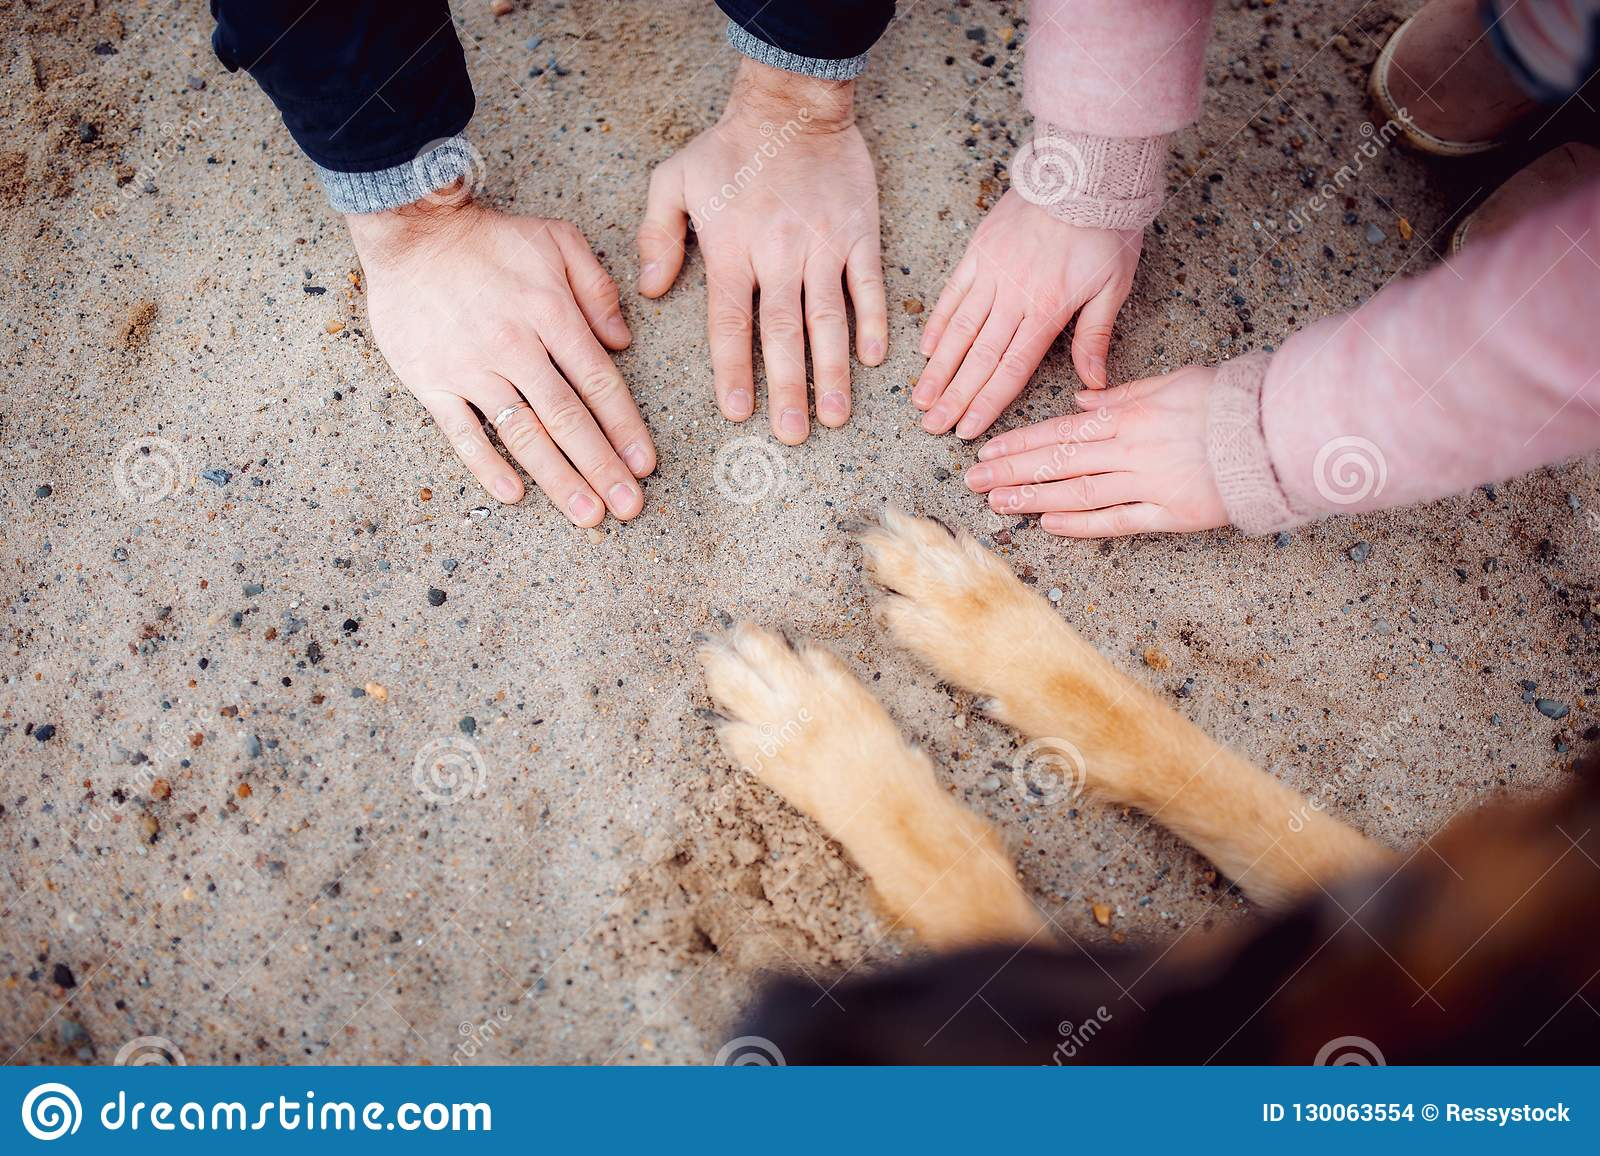 Paws of a dog and hands of people